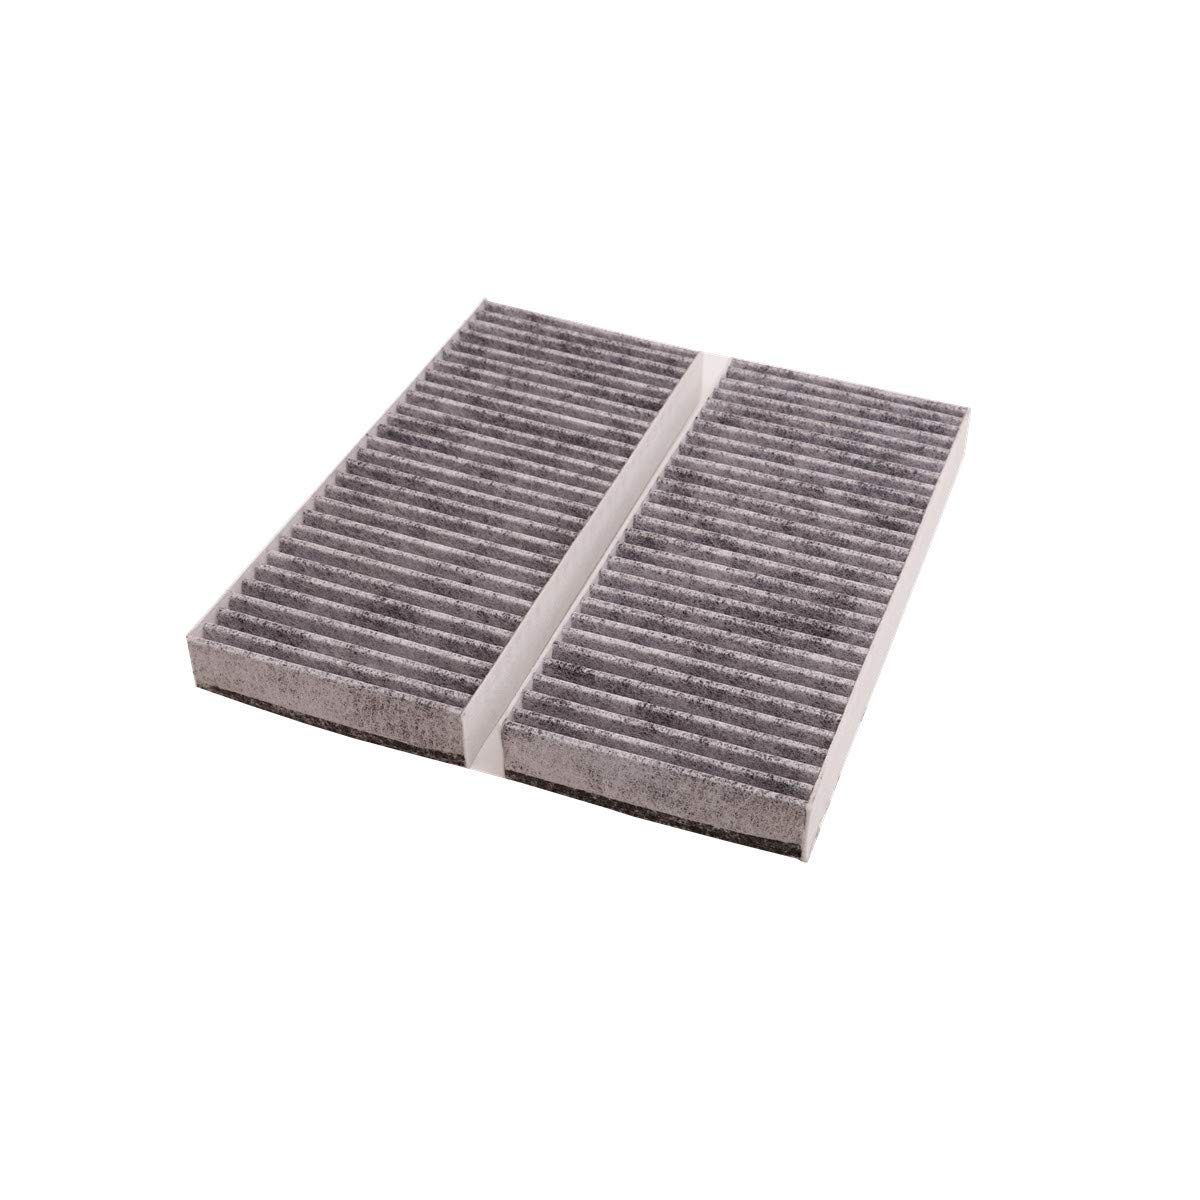 KAFEEK Cabin Air Filter KA10388 2-Pack includes Activated Carbon Replacement for NISSAN//INFINITI CF10388